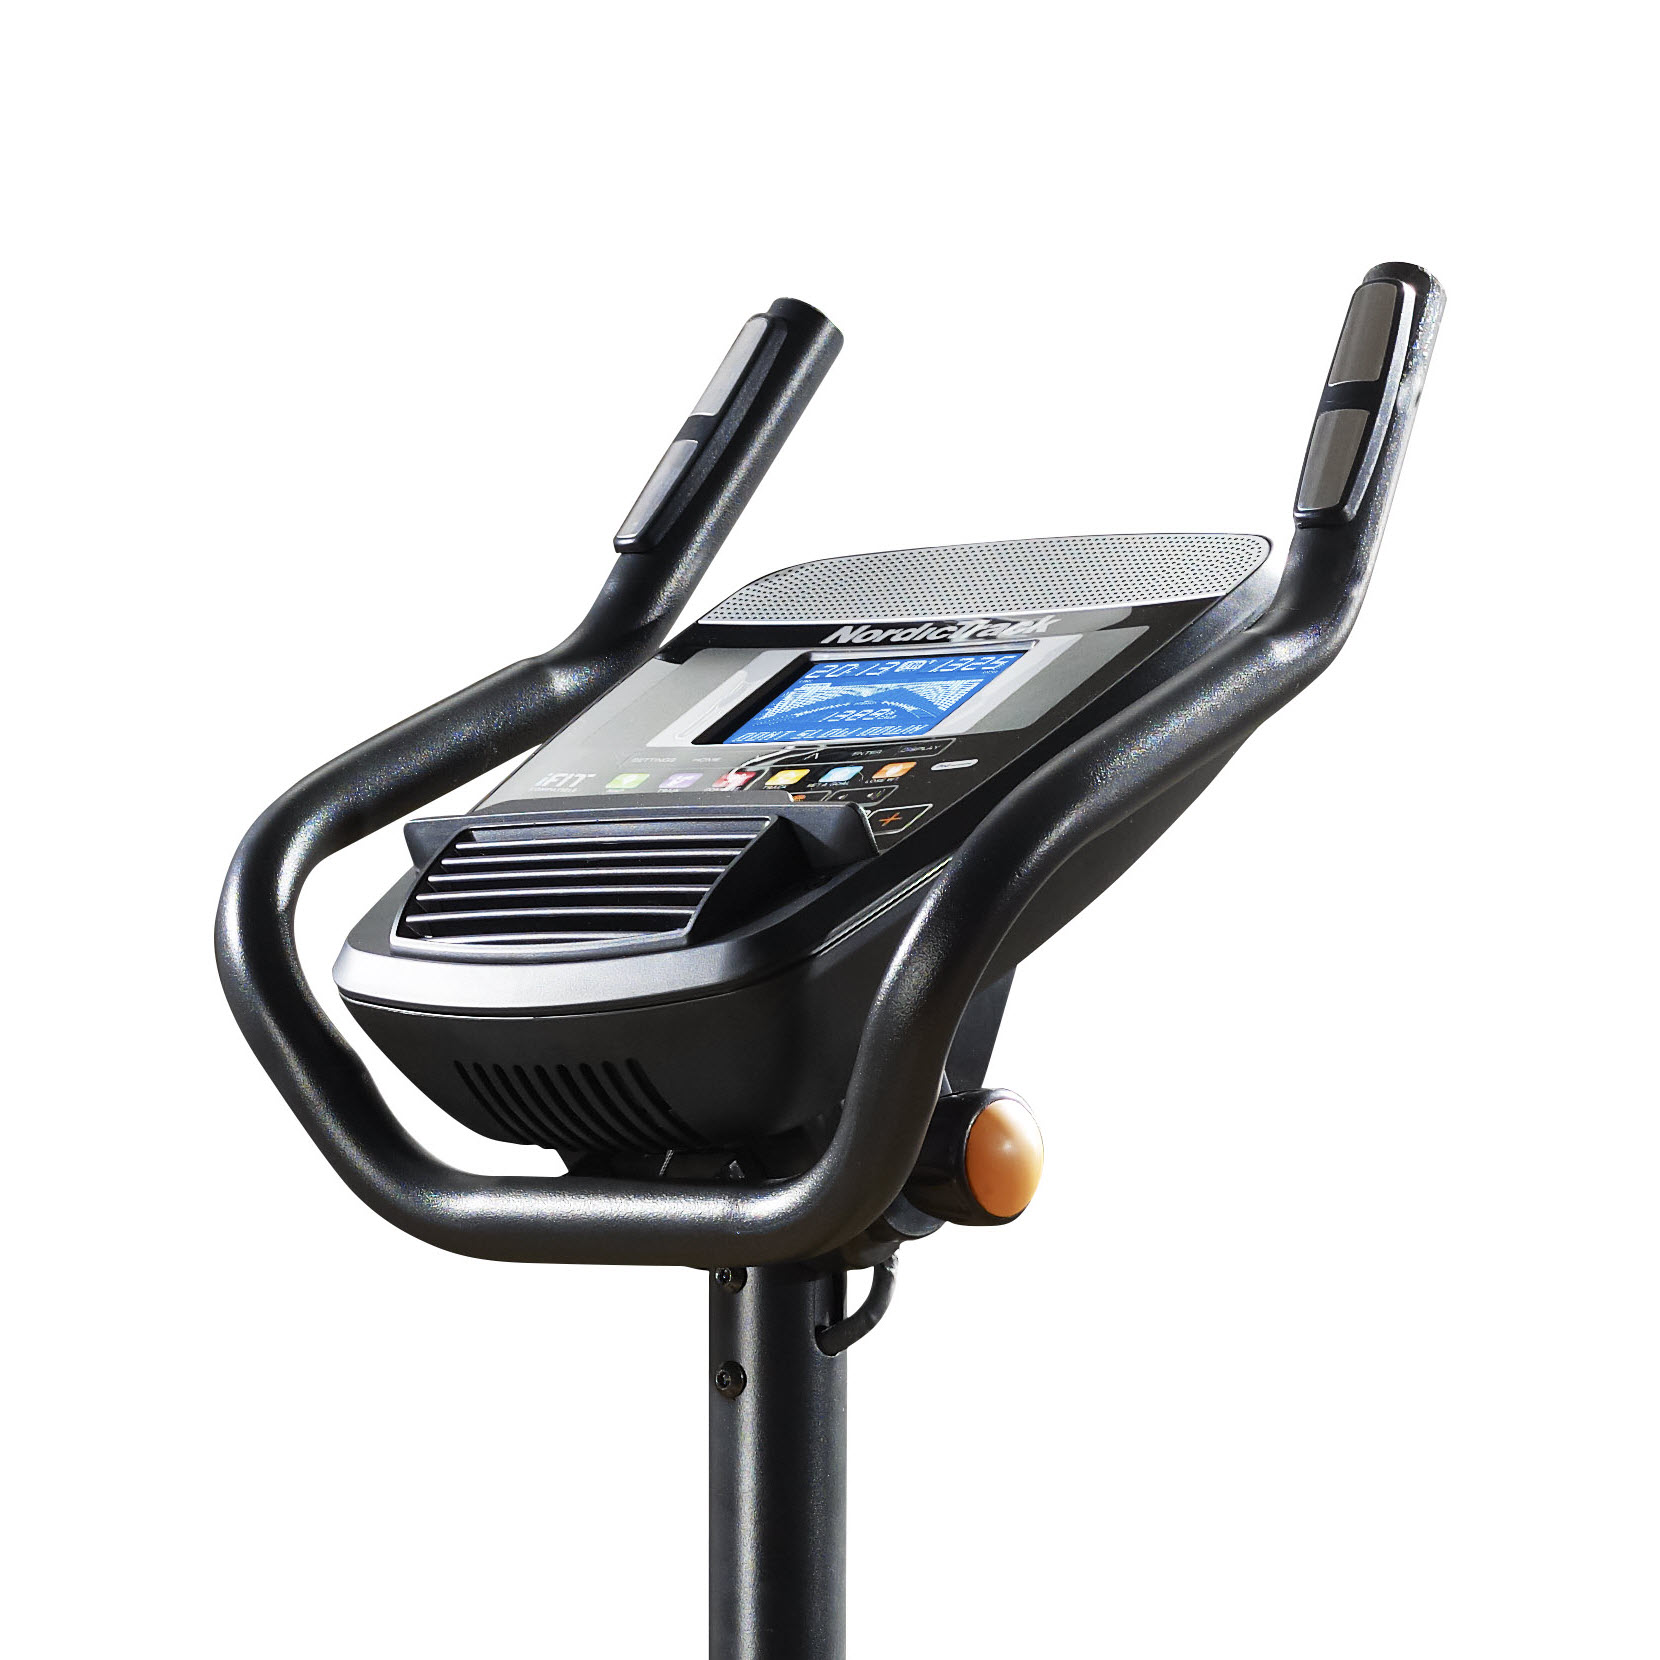 NordicTrack GX 2.7 Upright Cycle